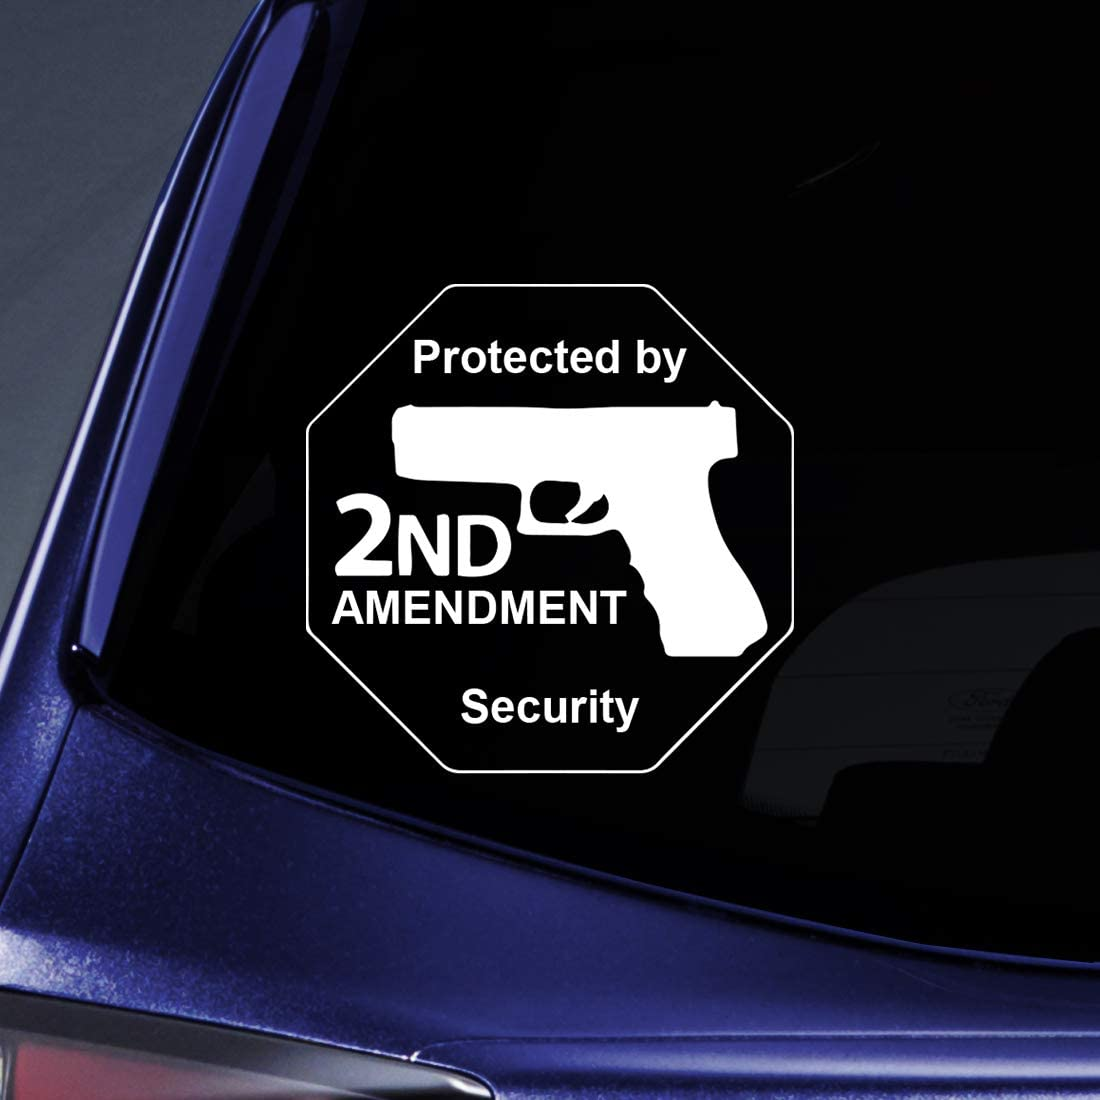 "Bargain Max Decals - Protected by 2nd Amendment Security Gun Sticker Decal Notebook Car Laptop 6"" (White)"